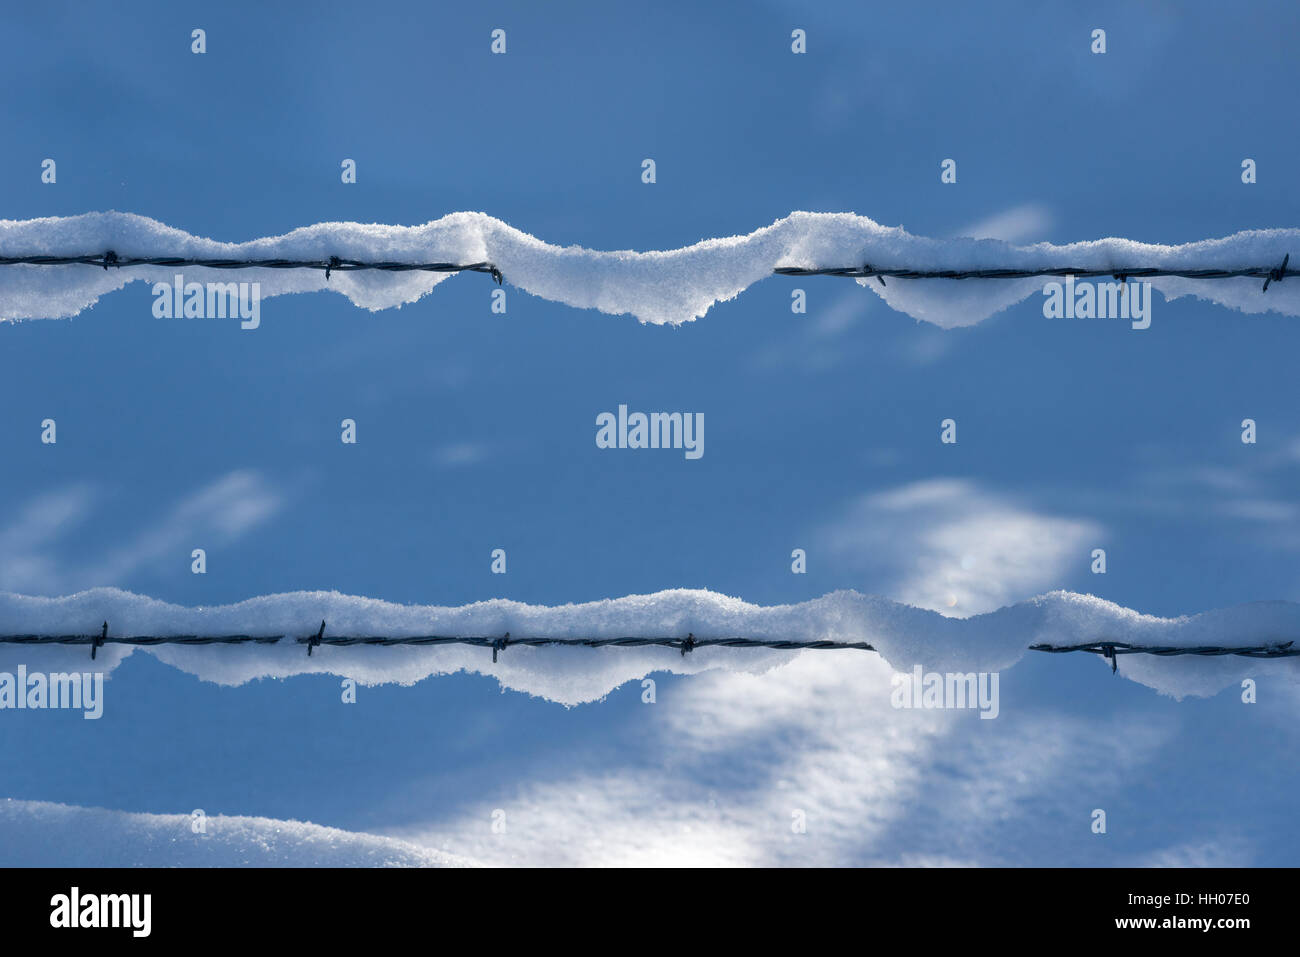 Barbed wire fence with snow, Wallowa Mountains, Oregon. - Stock Image